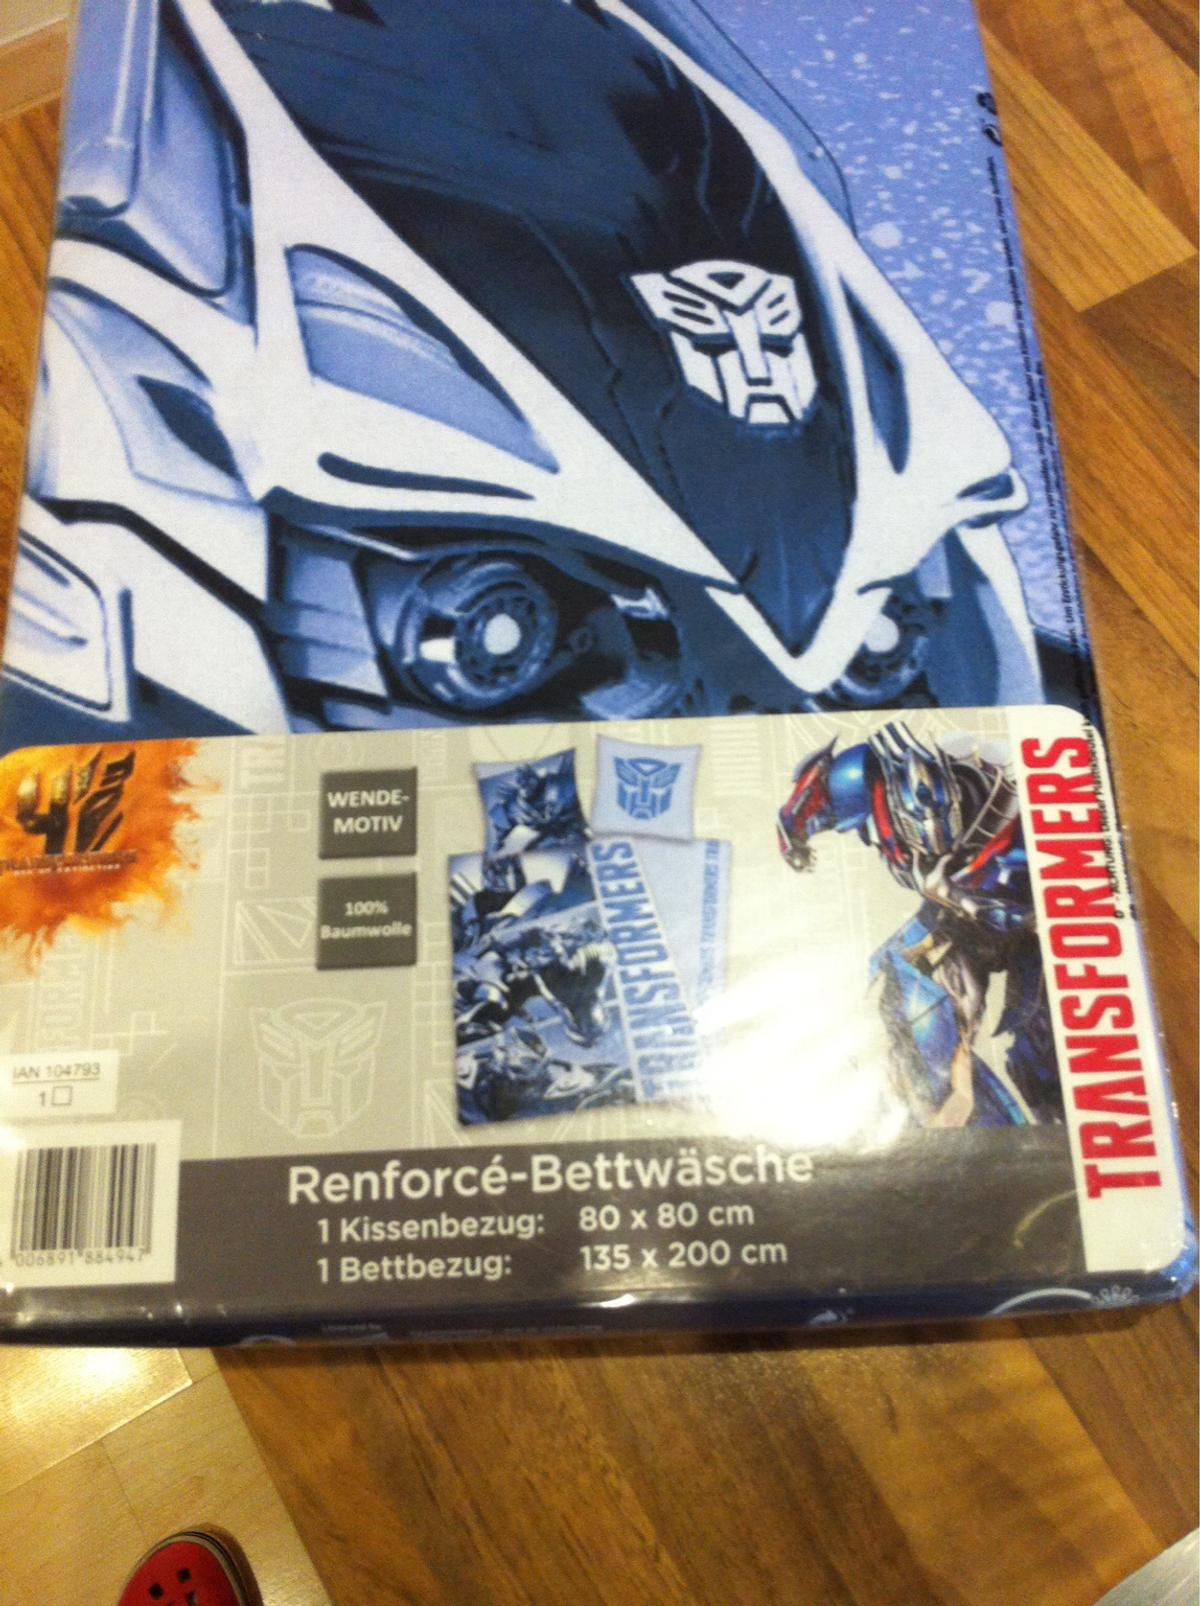 Bettwäsche Transformers Transformers Bettwäsche 135x200 Neu In 33104 Paderborn For €25.00 For Sale | Shpock